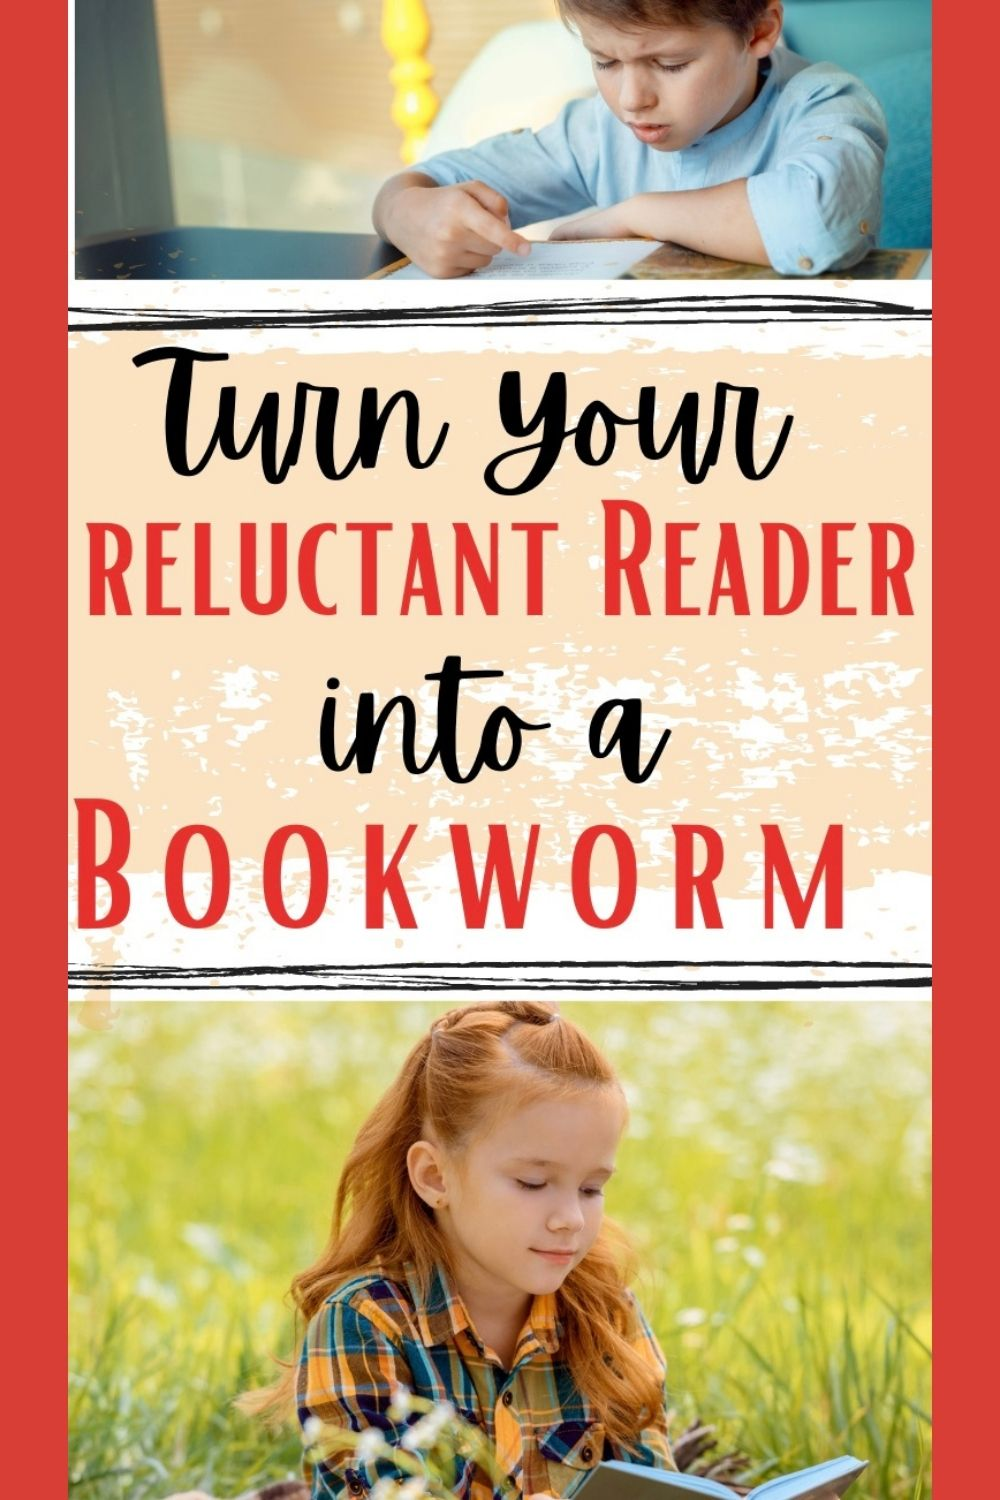 Girl reading book in a field. Boy reading at a desk. Text reads: how to turn your reluctant reader into a bookworm